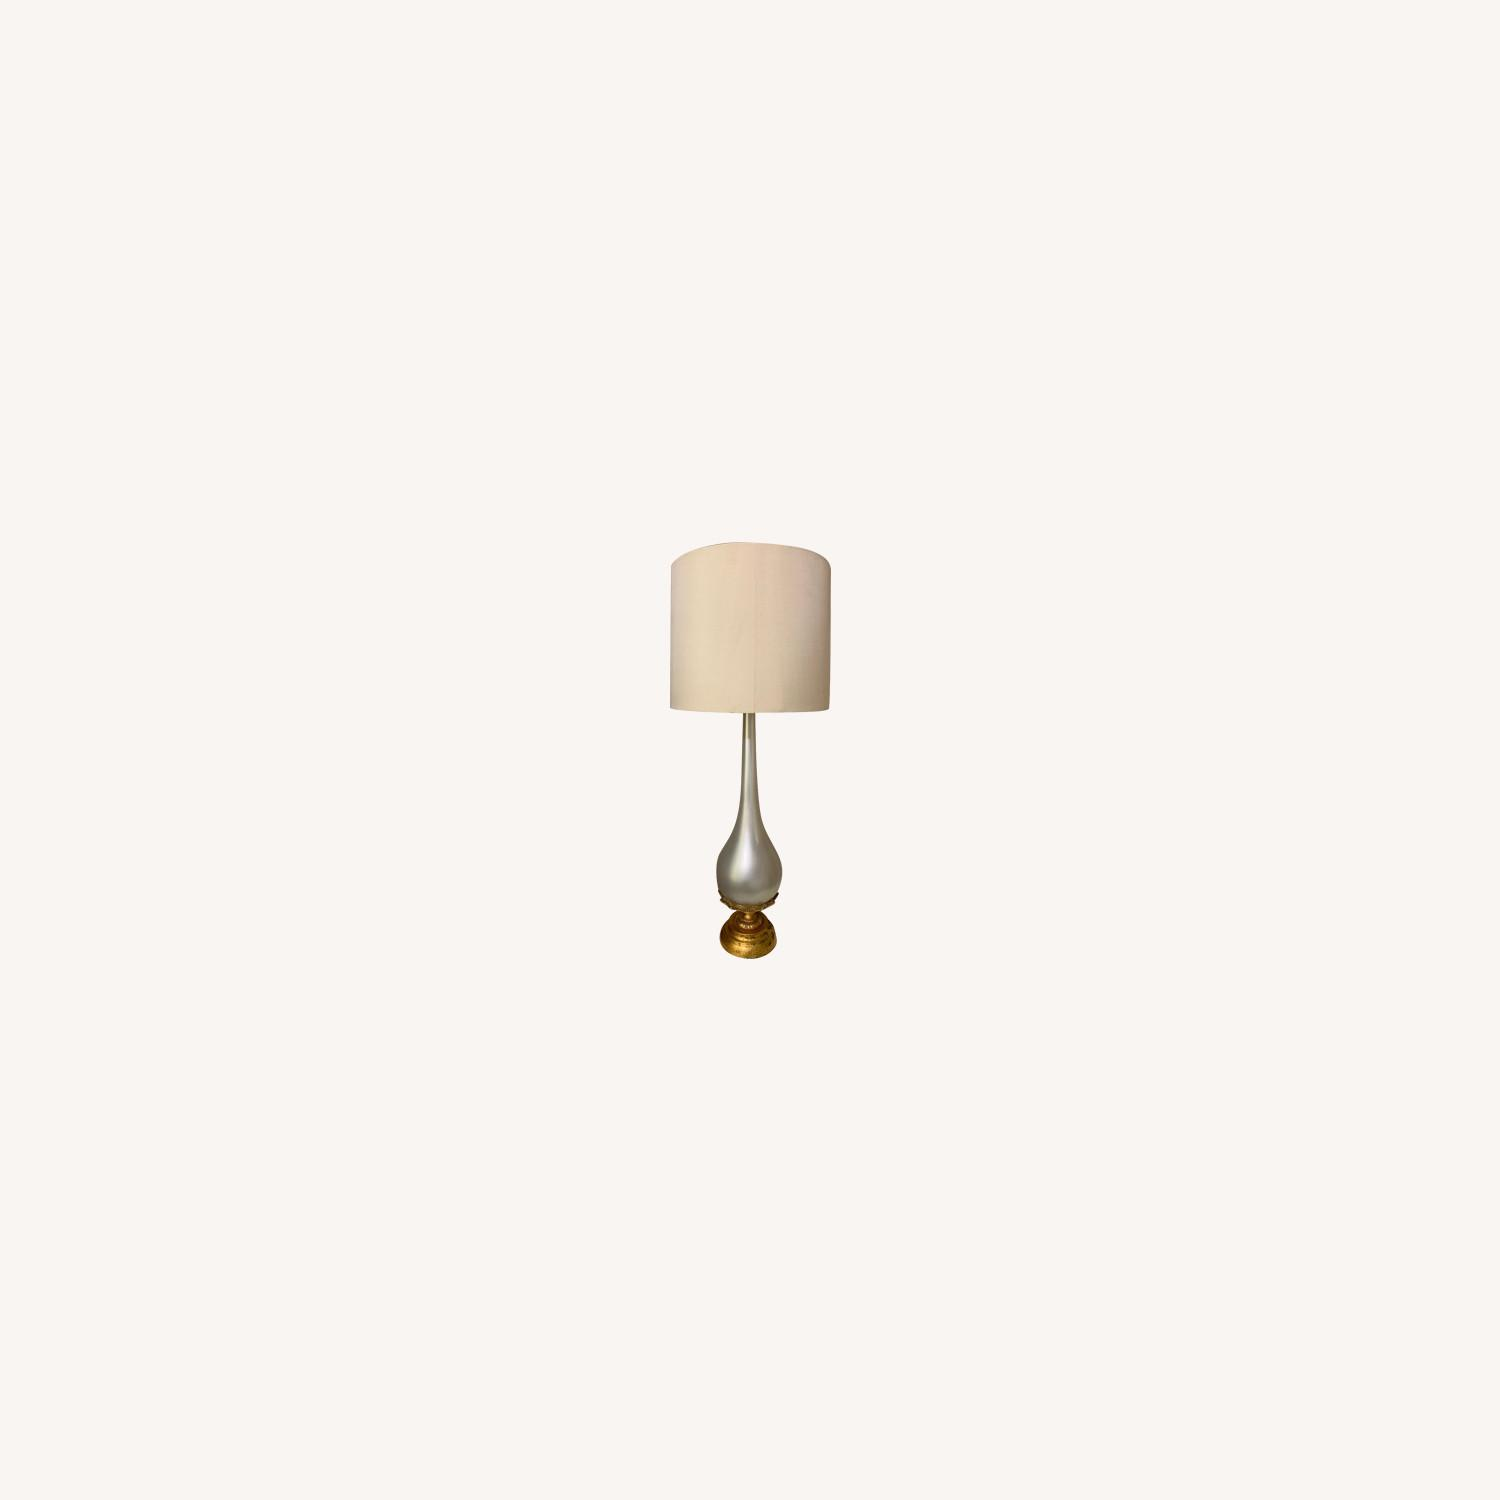 Hollywood Regency Inspired Table Lamps - image-0